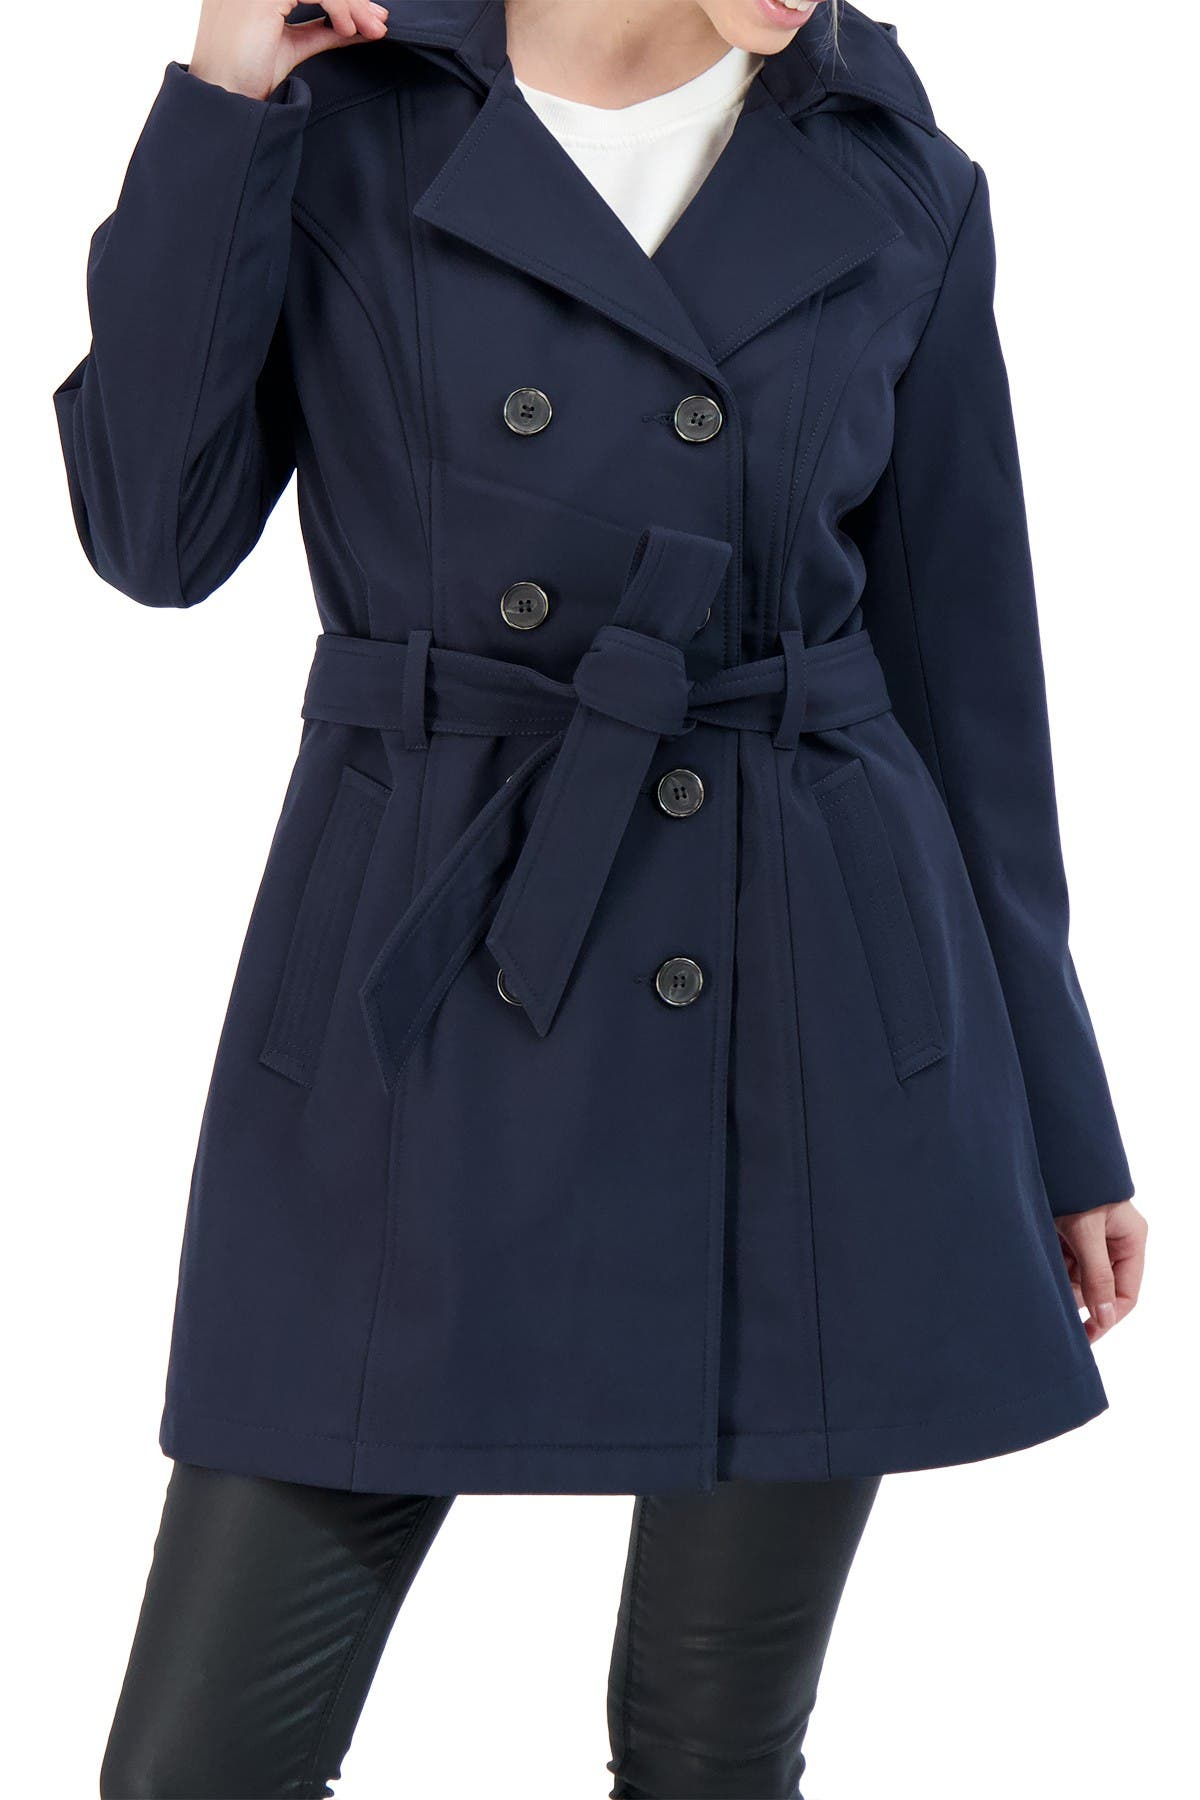 Sebby Collection Womens Soft Shell Trench Coat Water Resistant with a Detachable Hood